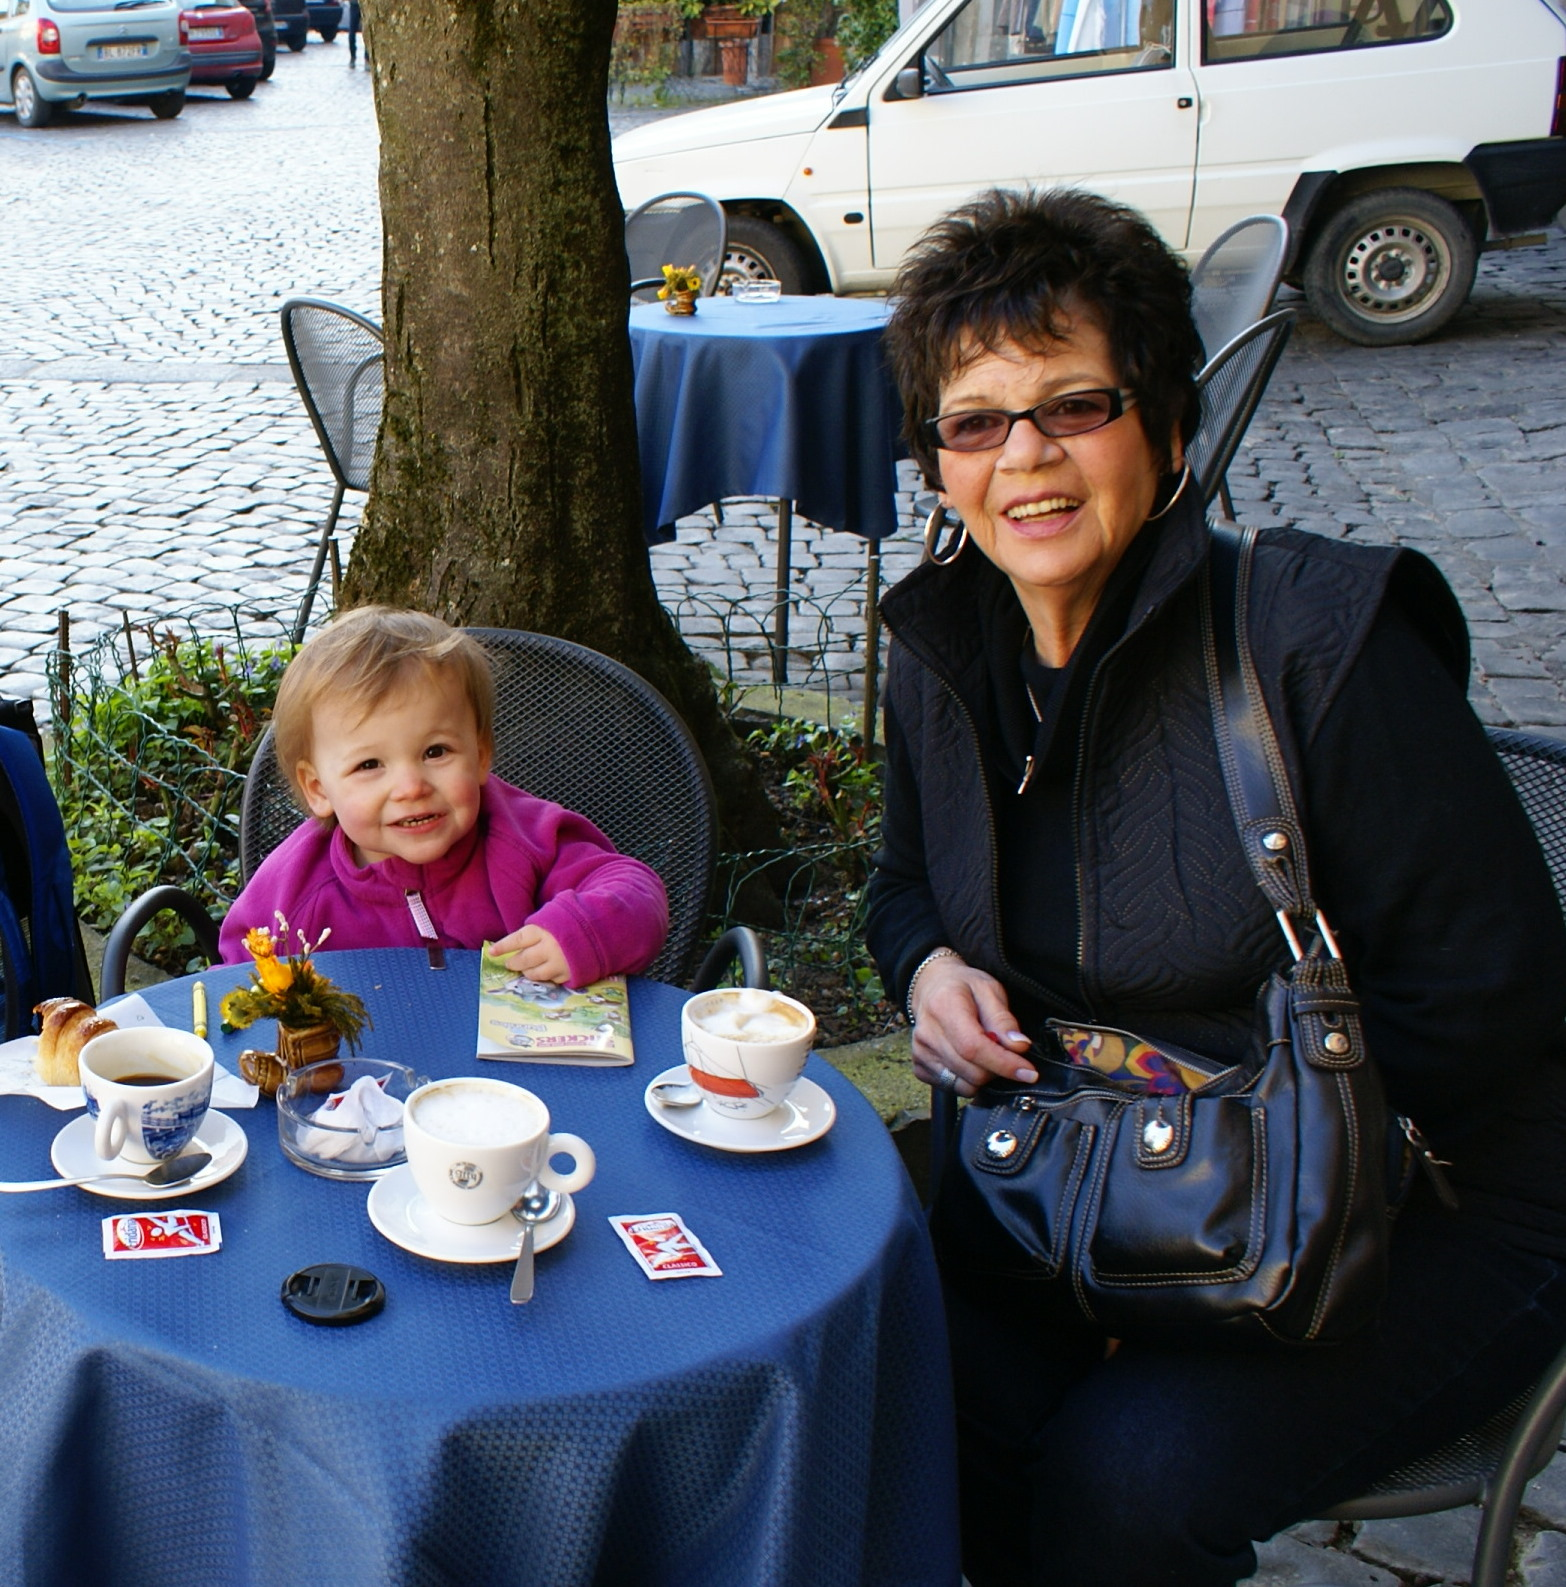 Lucia & Mom at a street-side cafe in Orvieto, Italy.